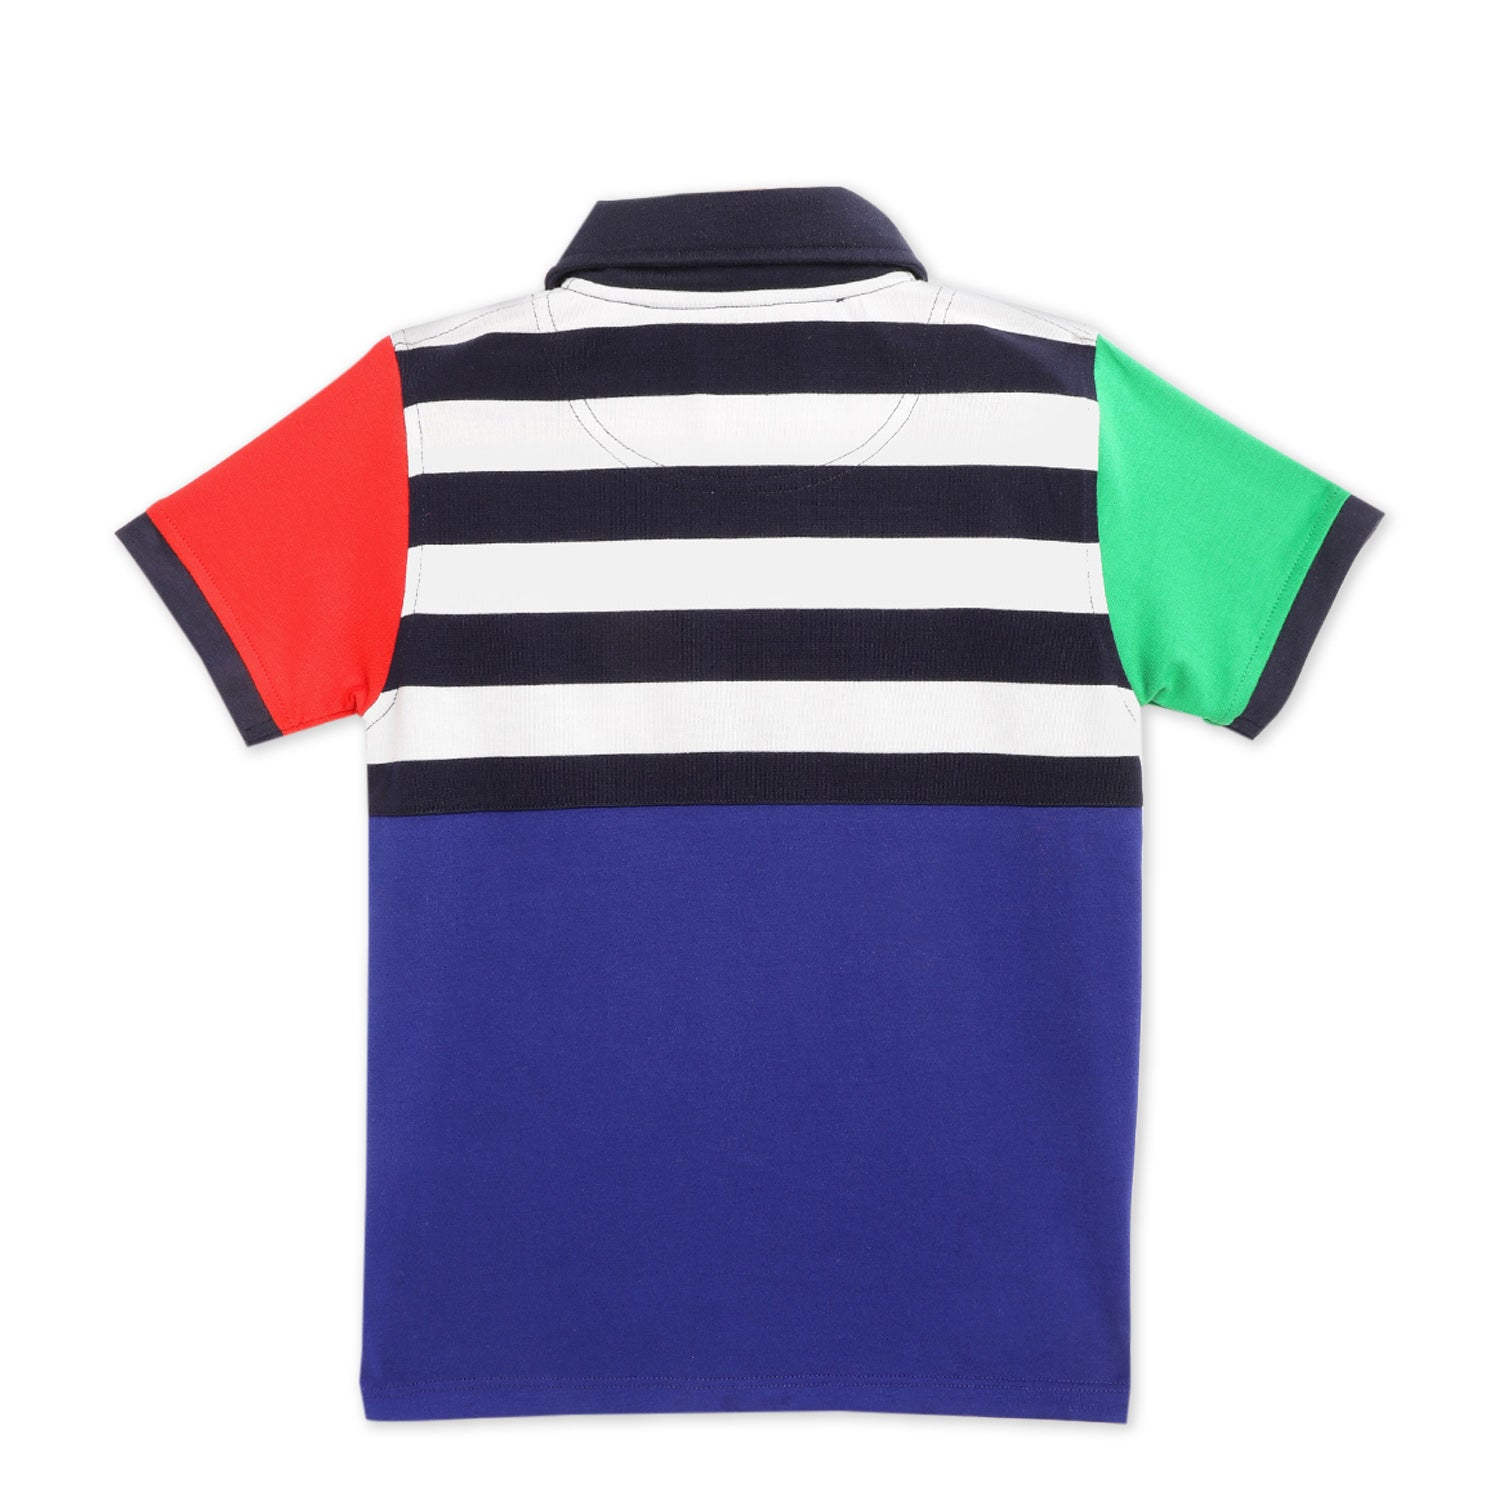 kids-clolorblock striped polo tshirt-ws-hpolo-6146ml